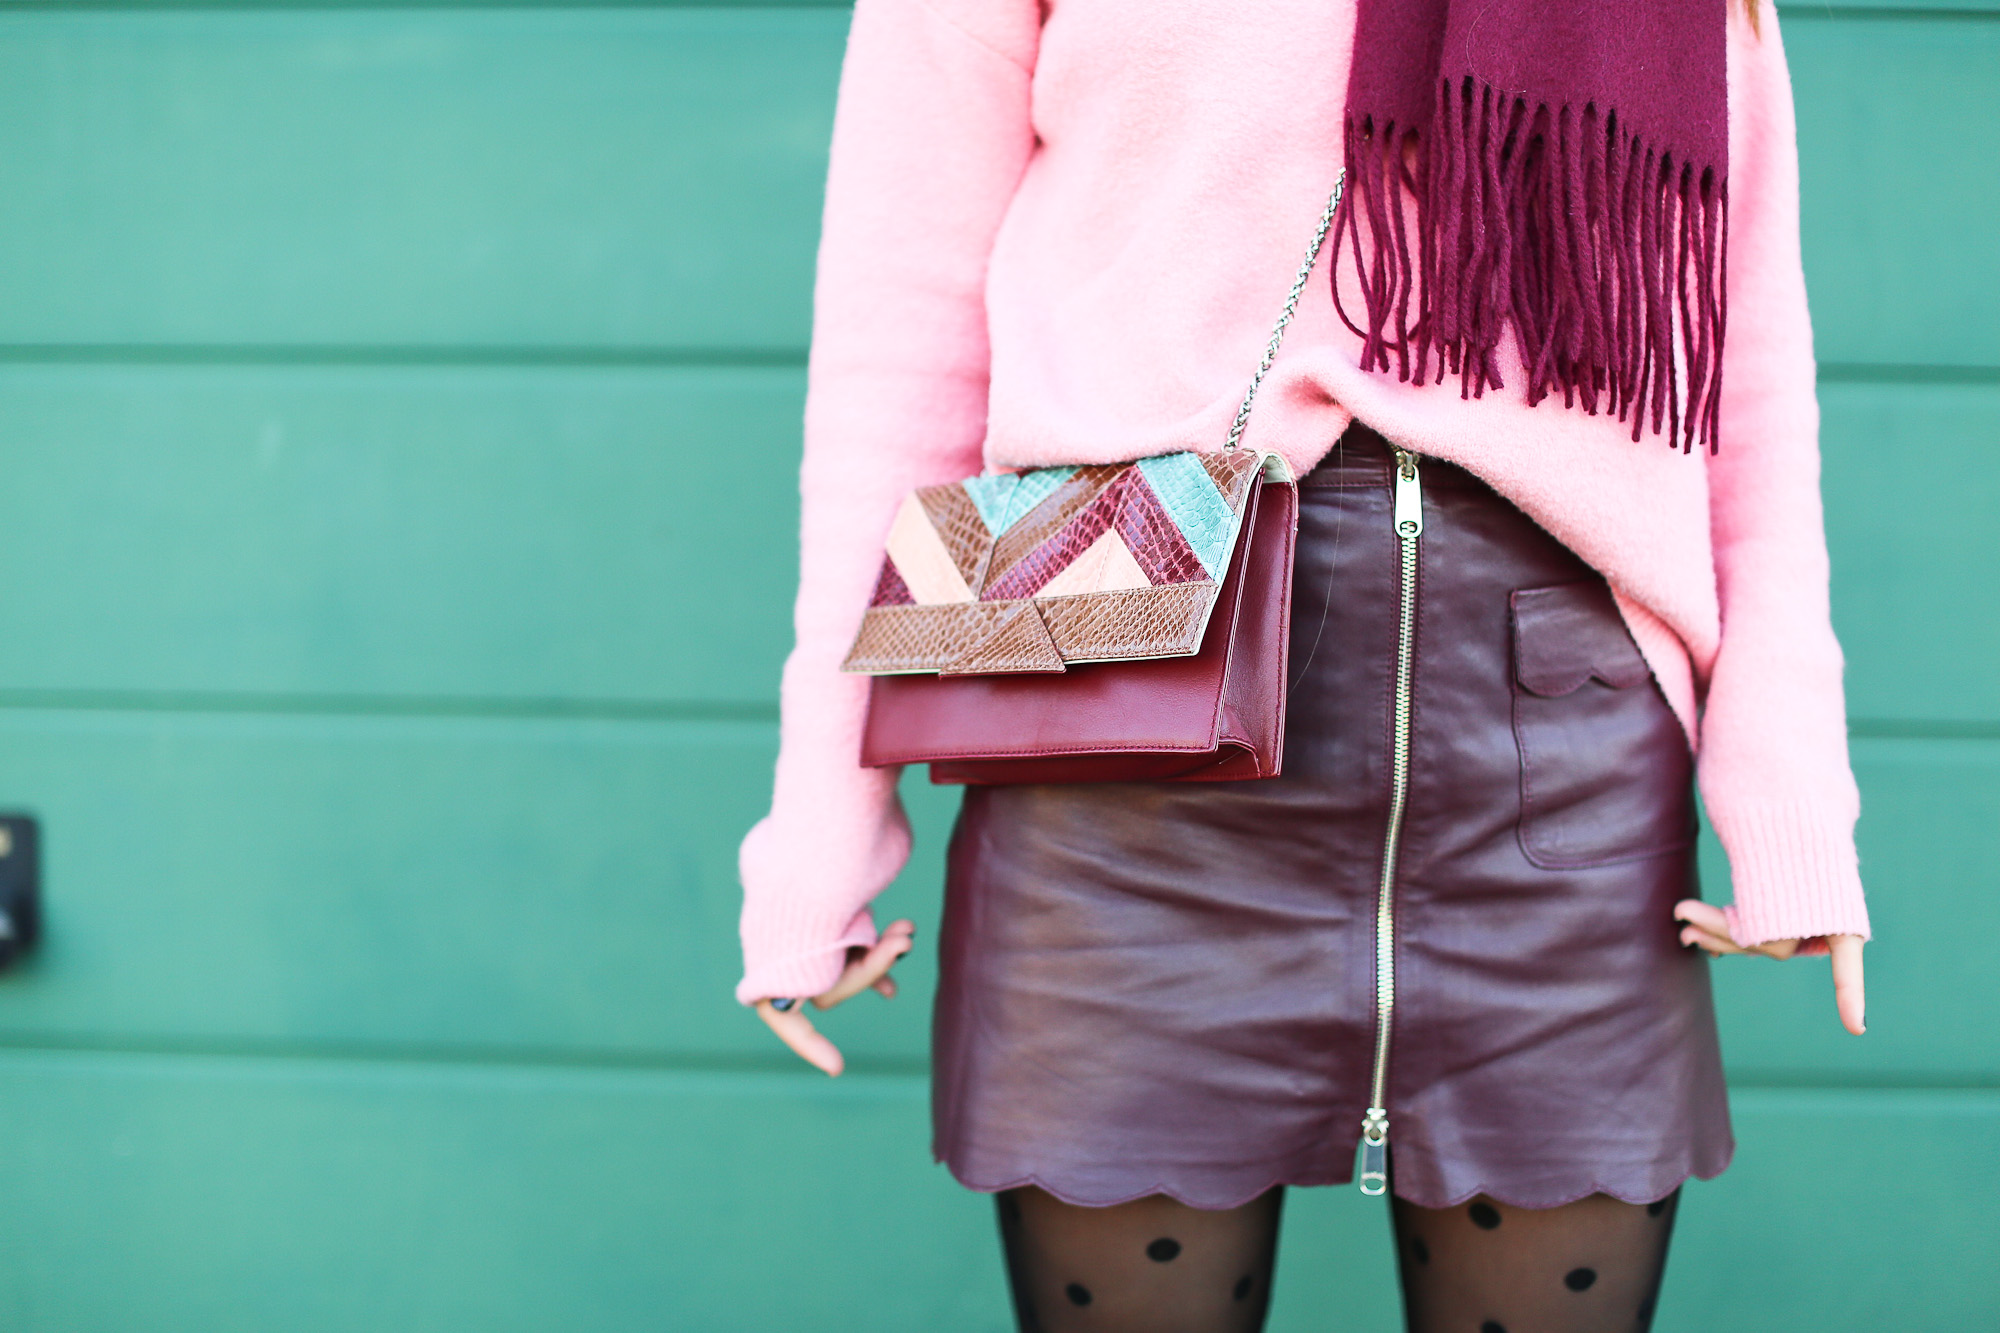 Clochet_streetstyle_fashionblogger_Max&Co_leatherminiskirt_andtherstories_pinksweater_celinesunglasses-6